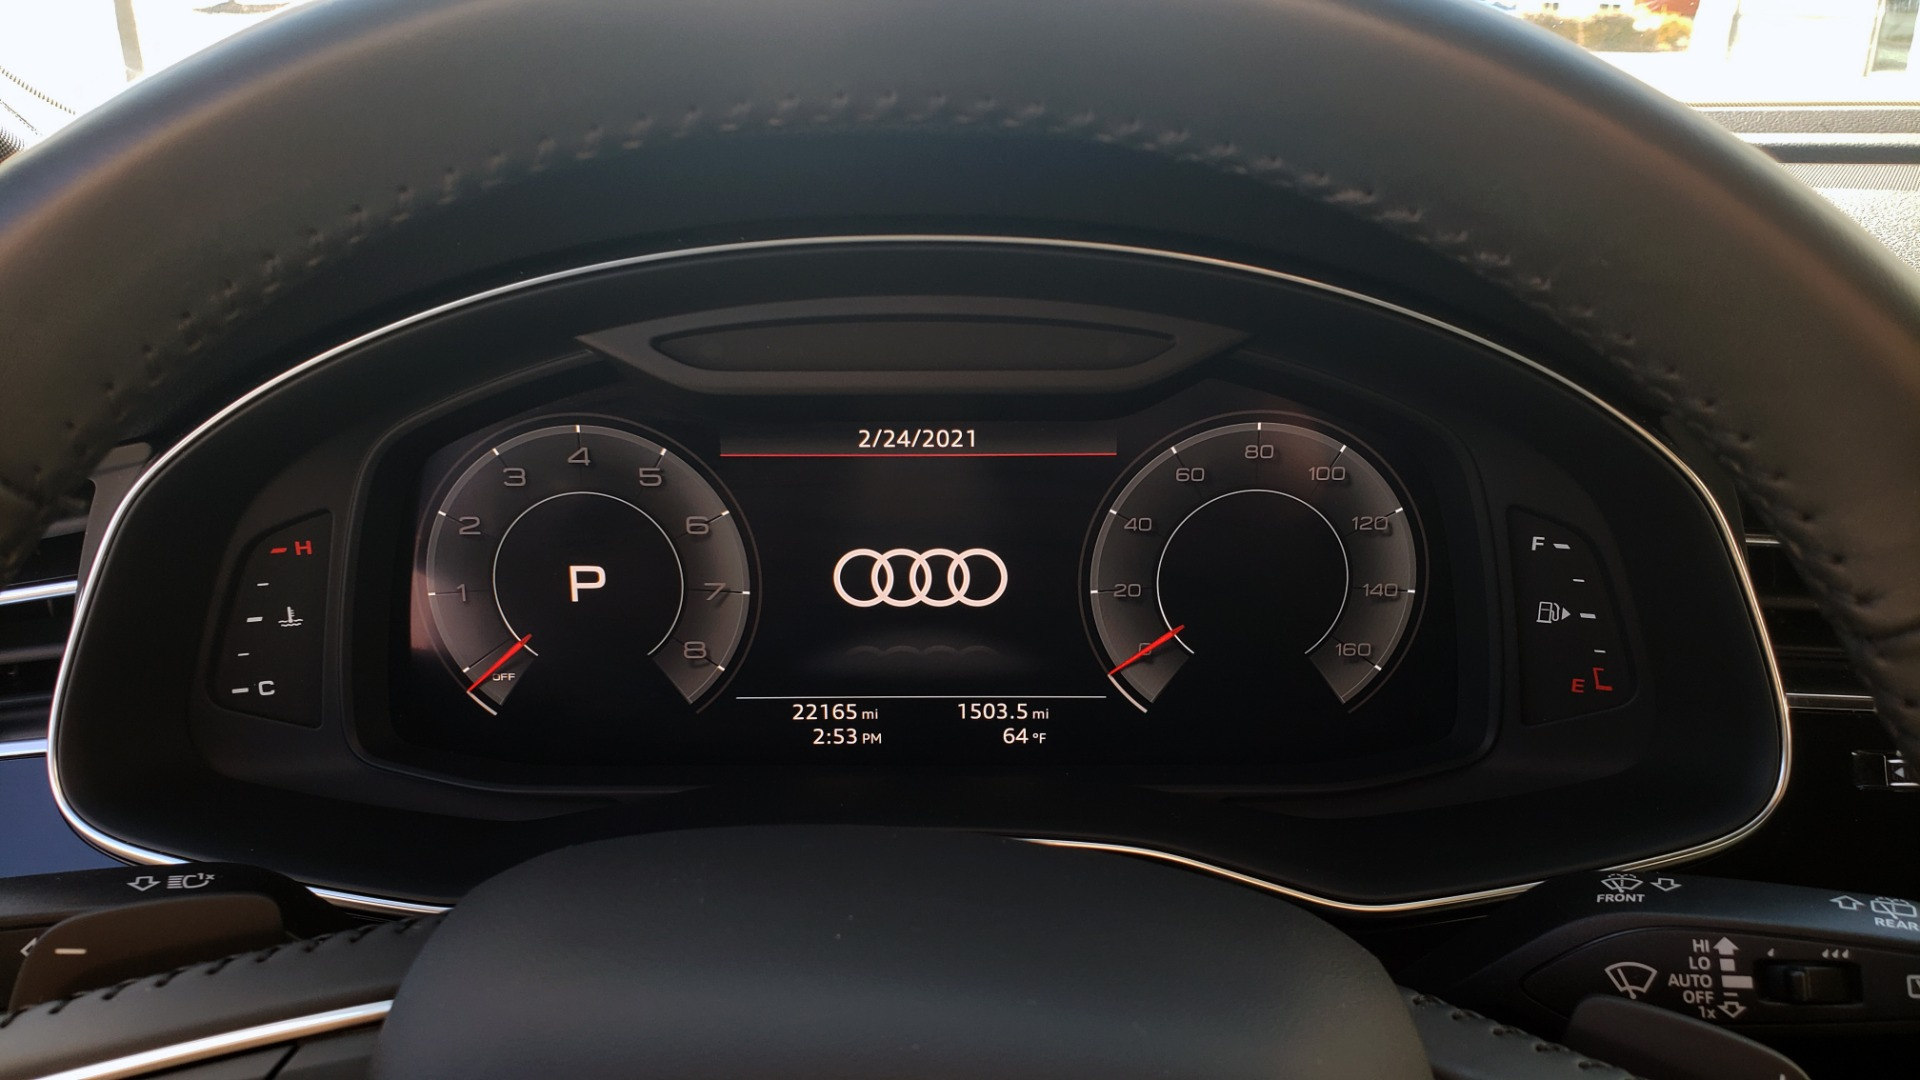 Used 2020 Audi Q7 PREMIUM PLUS / NAV / SUNROOF / 3-ROW / REARVIEW for sale $50,695 at Formula Imports in Charlotte NC 28227 24